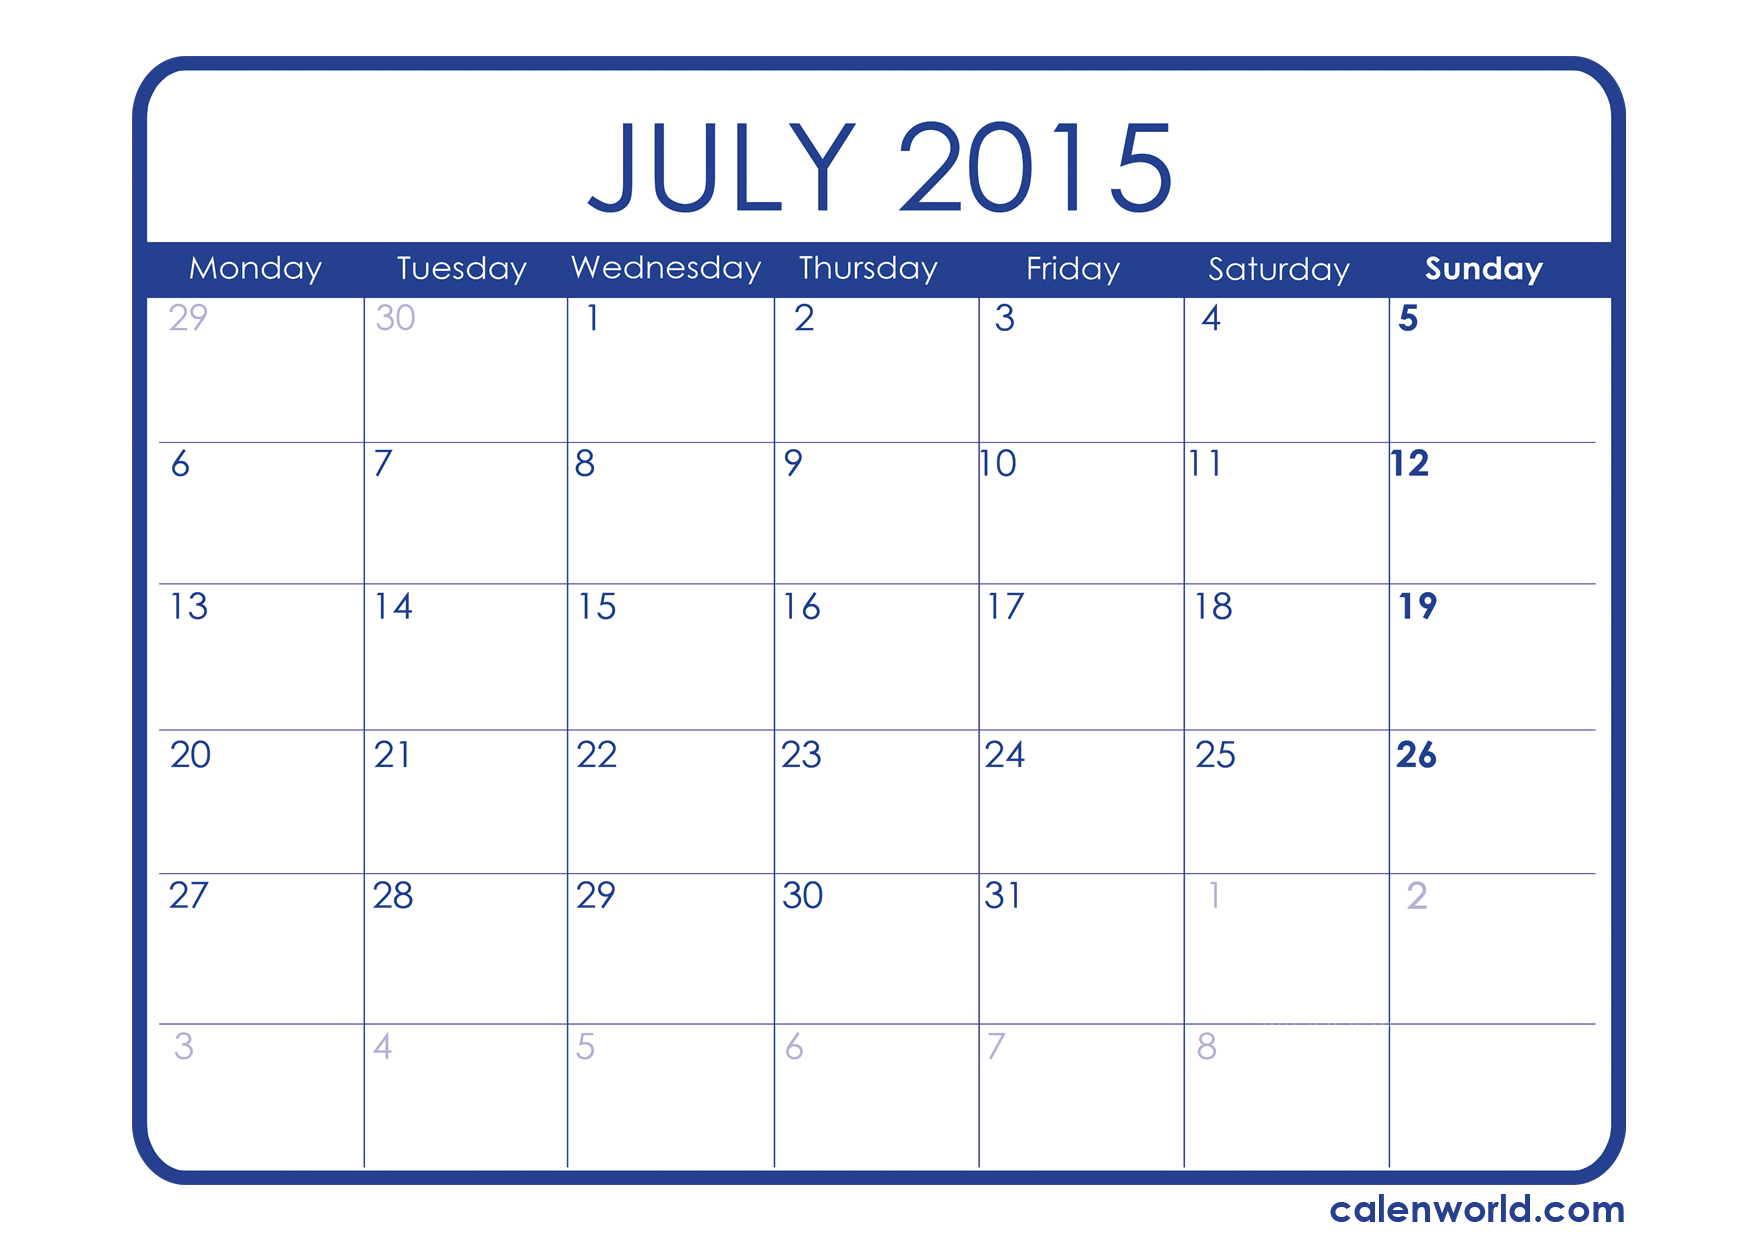 July 2015 calendar in excel get an exclusive collection of july july 2015 calendar in excel get an exclusive collection of july 2015 calendar printable template saigontimesfo